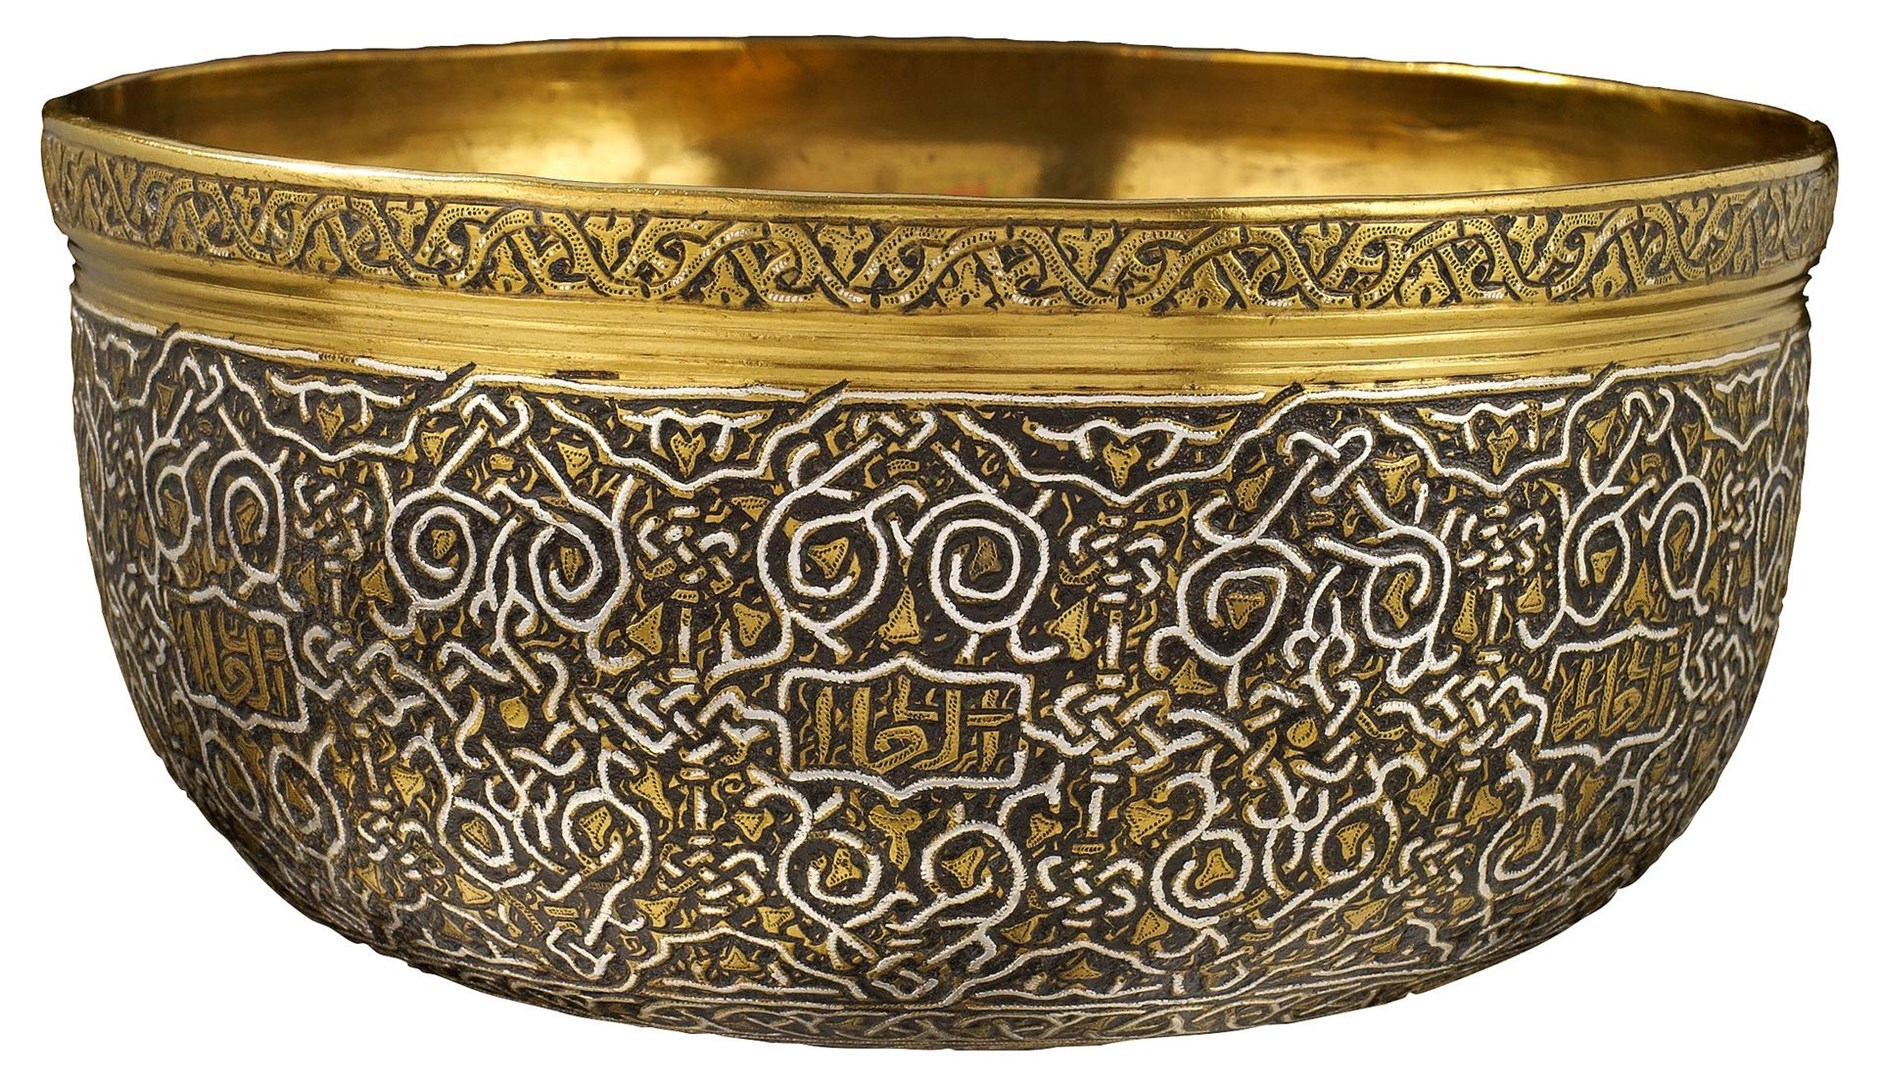 Silver inlaid brass bowl by Mamluk, Egyptian